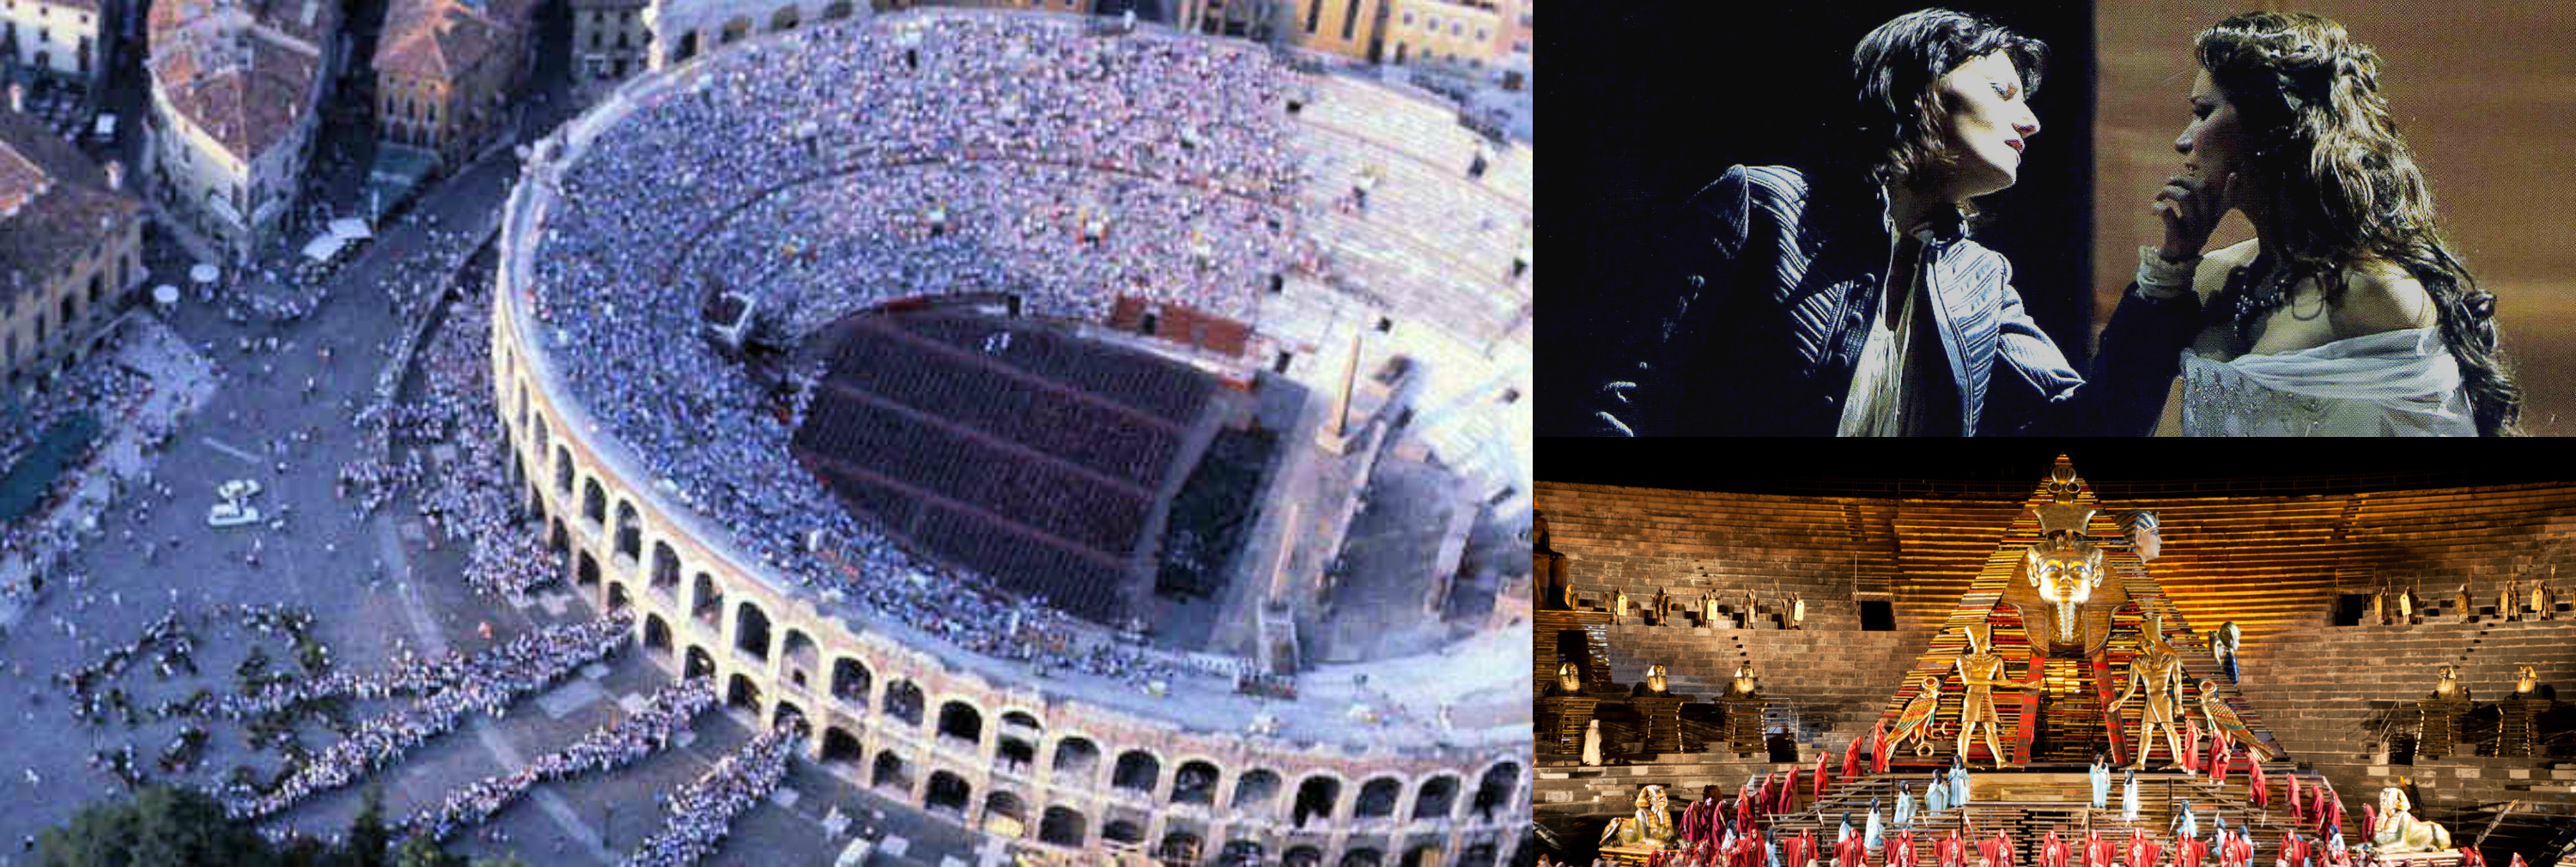 Verona: Arena, Stronghold, Backdrop for Star-Crossed Lovers